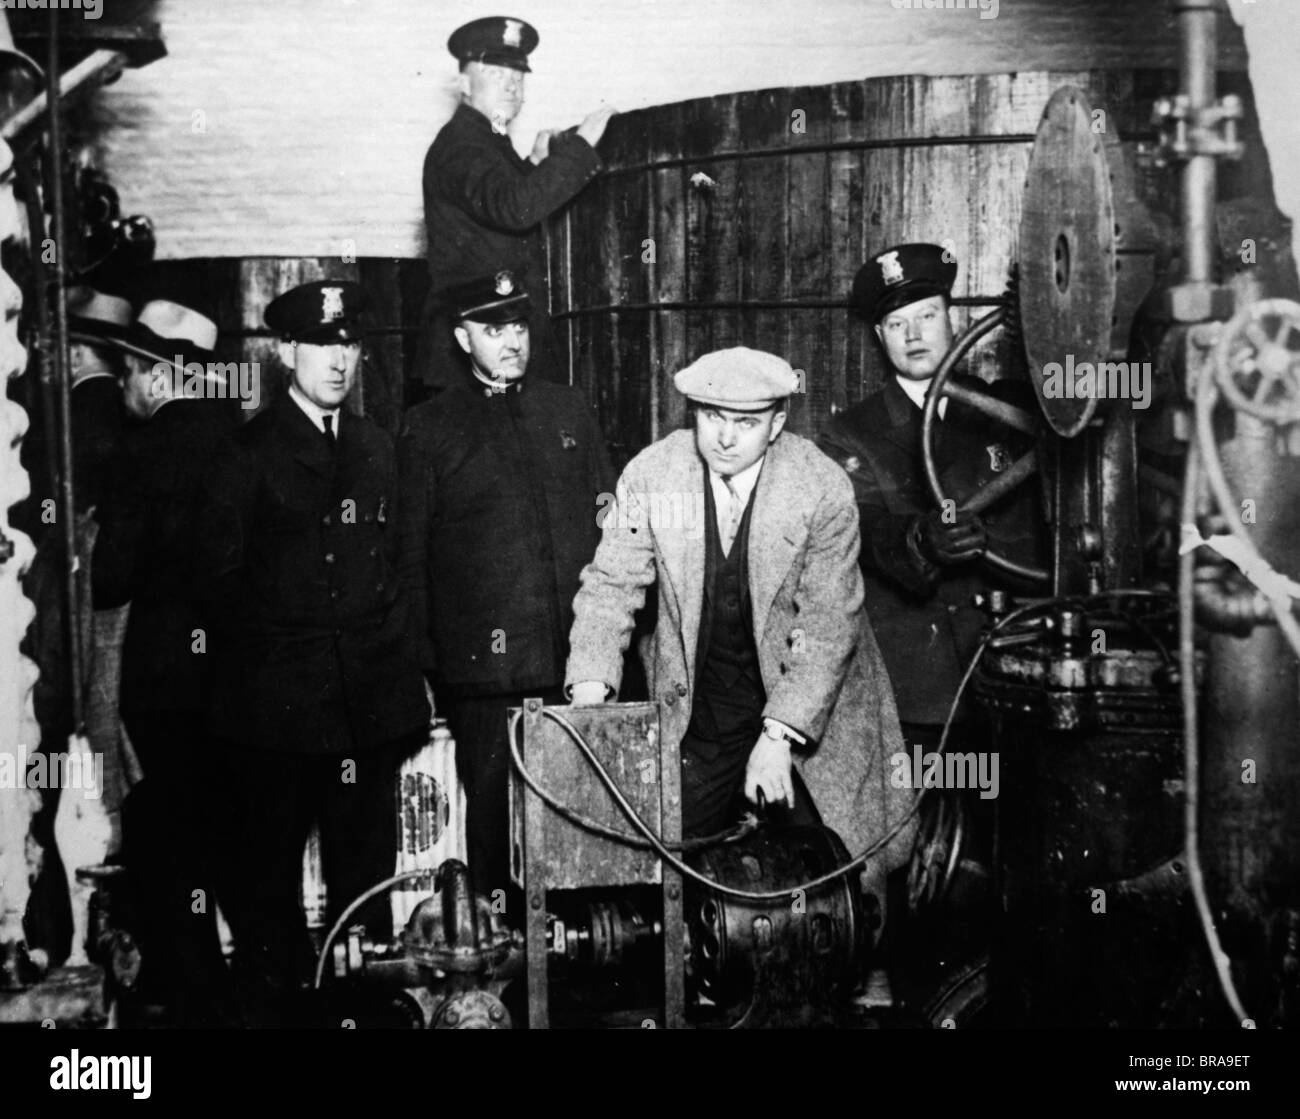 1920s FEDERAL AGENTS POSED WITH CAPTURED EQUIPMENT IN A DETROIT UNDERGROUND DISTILLERY - Stock Image